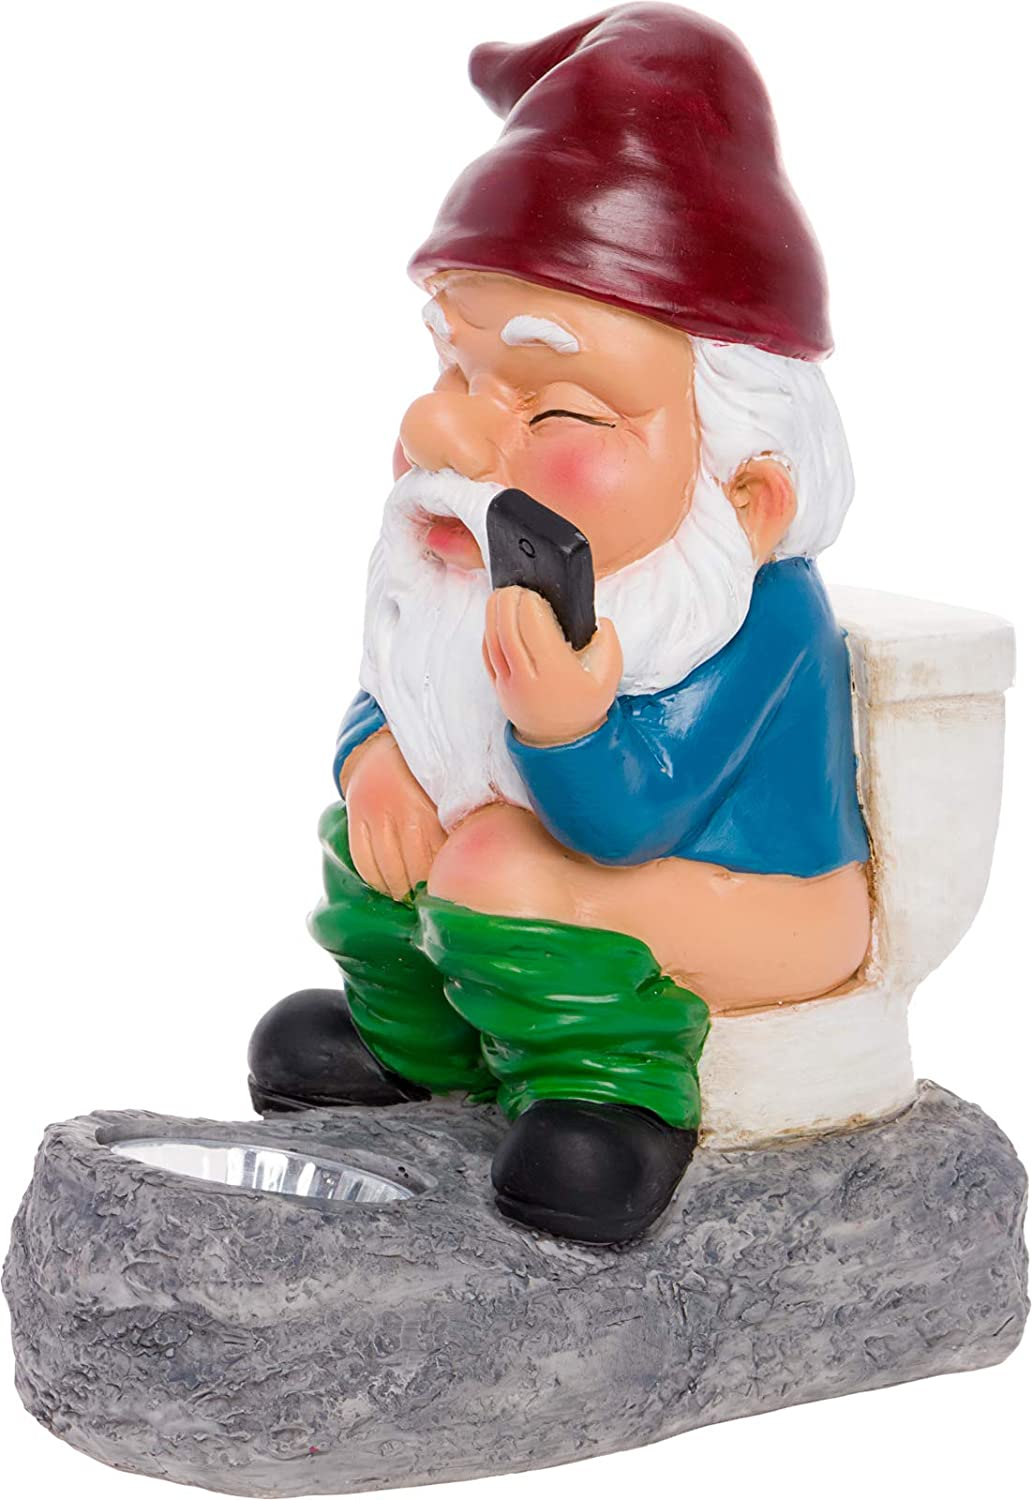 GreenLighting Solar Powered Gnome on a Toilet - Novelty Light Up Garden Statue